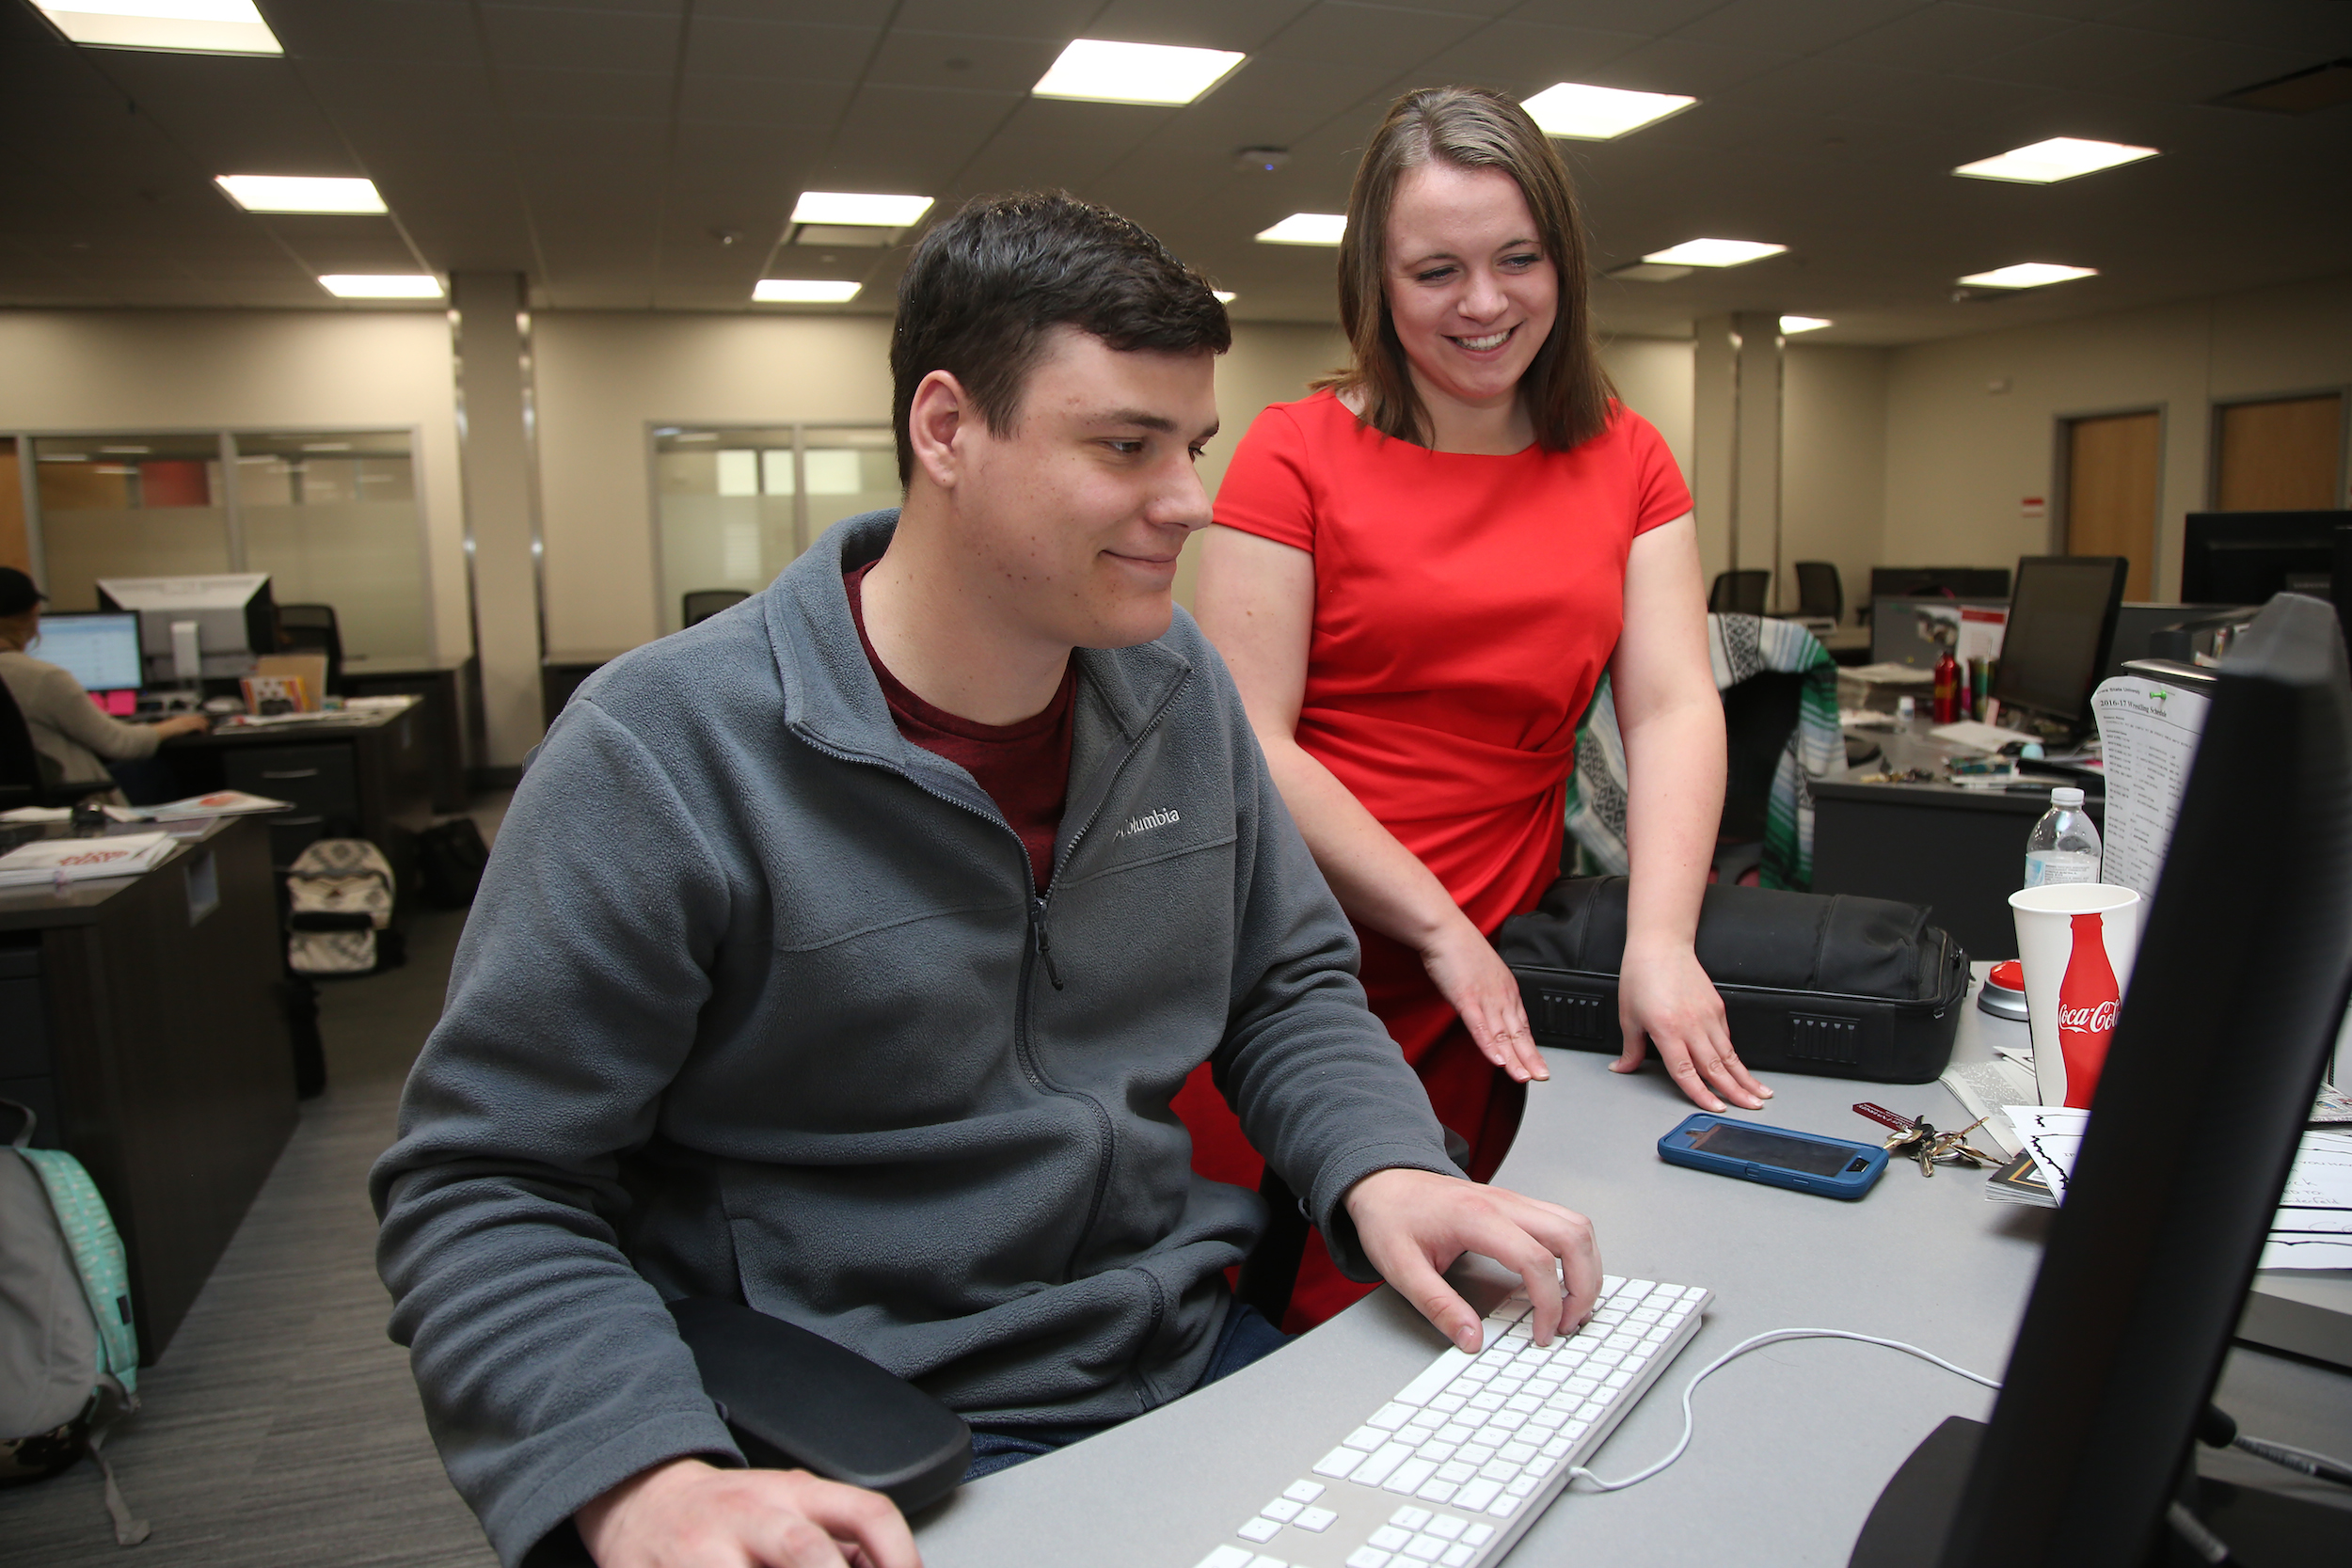 Barske works with Luke Manderfeld, assistant sports editor, on an upcoming story. (Blake Lanser/Iowa State University.)